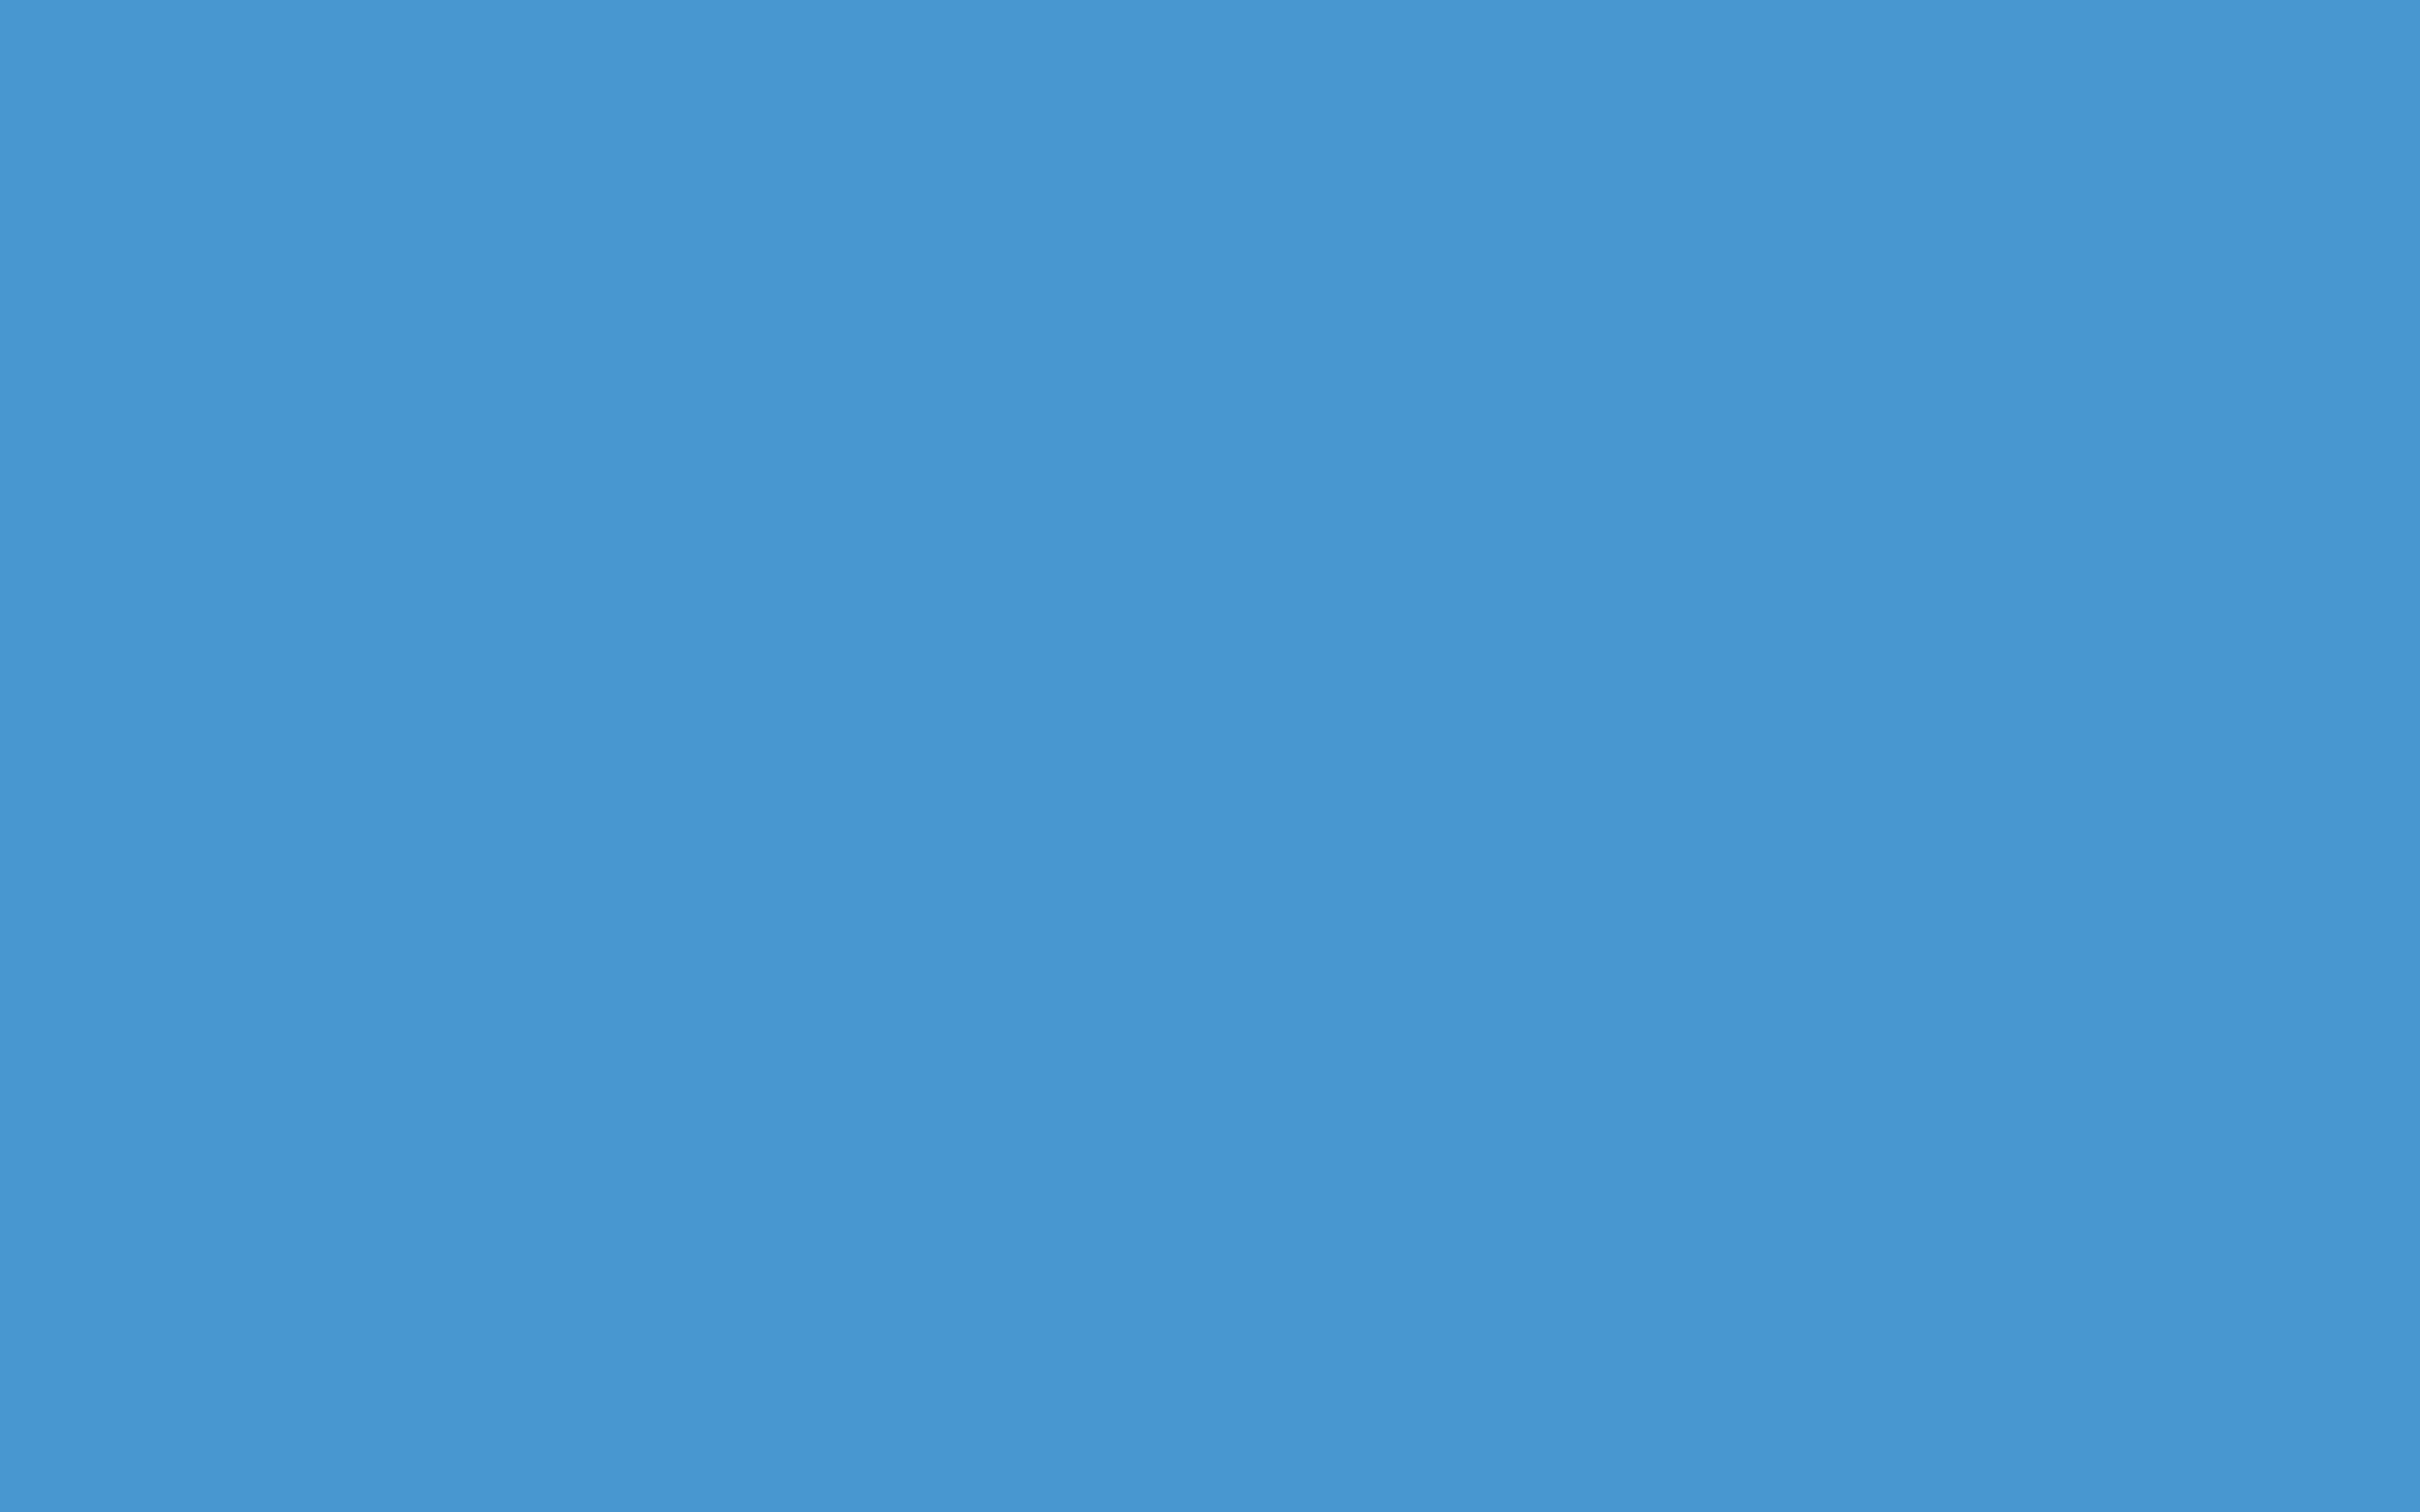 2880x1800 Celestial Blue Solid Color Background